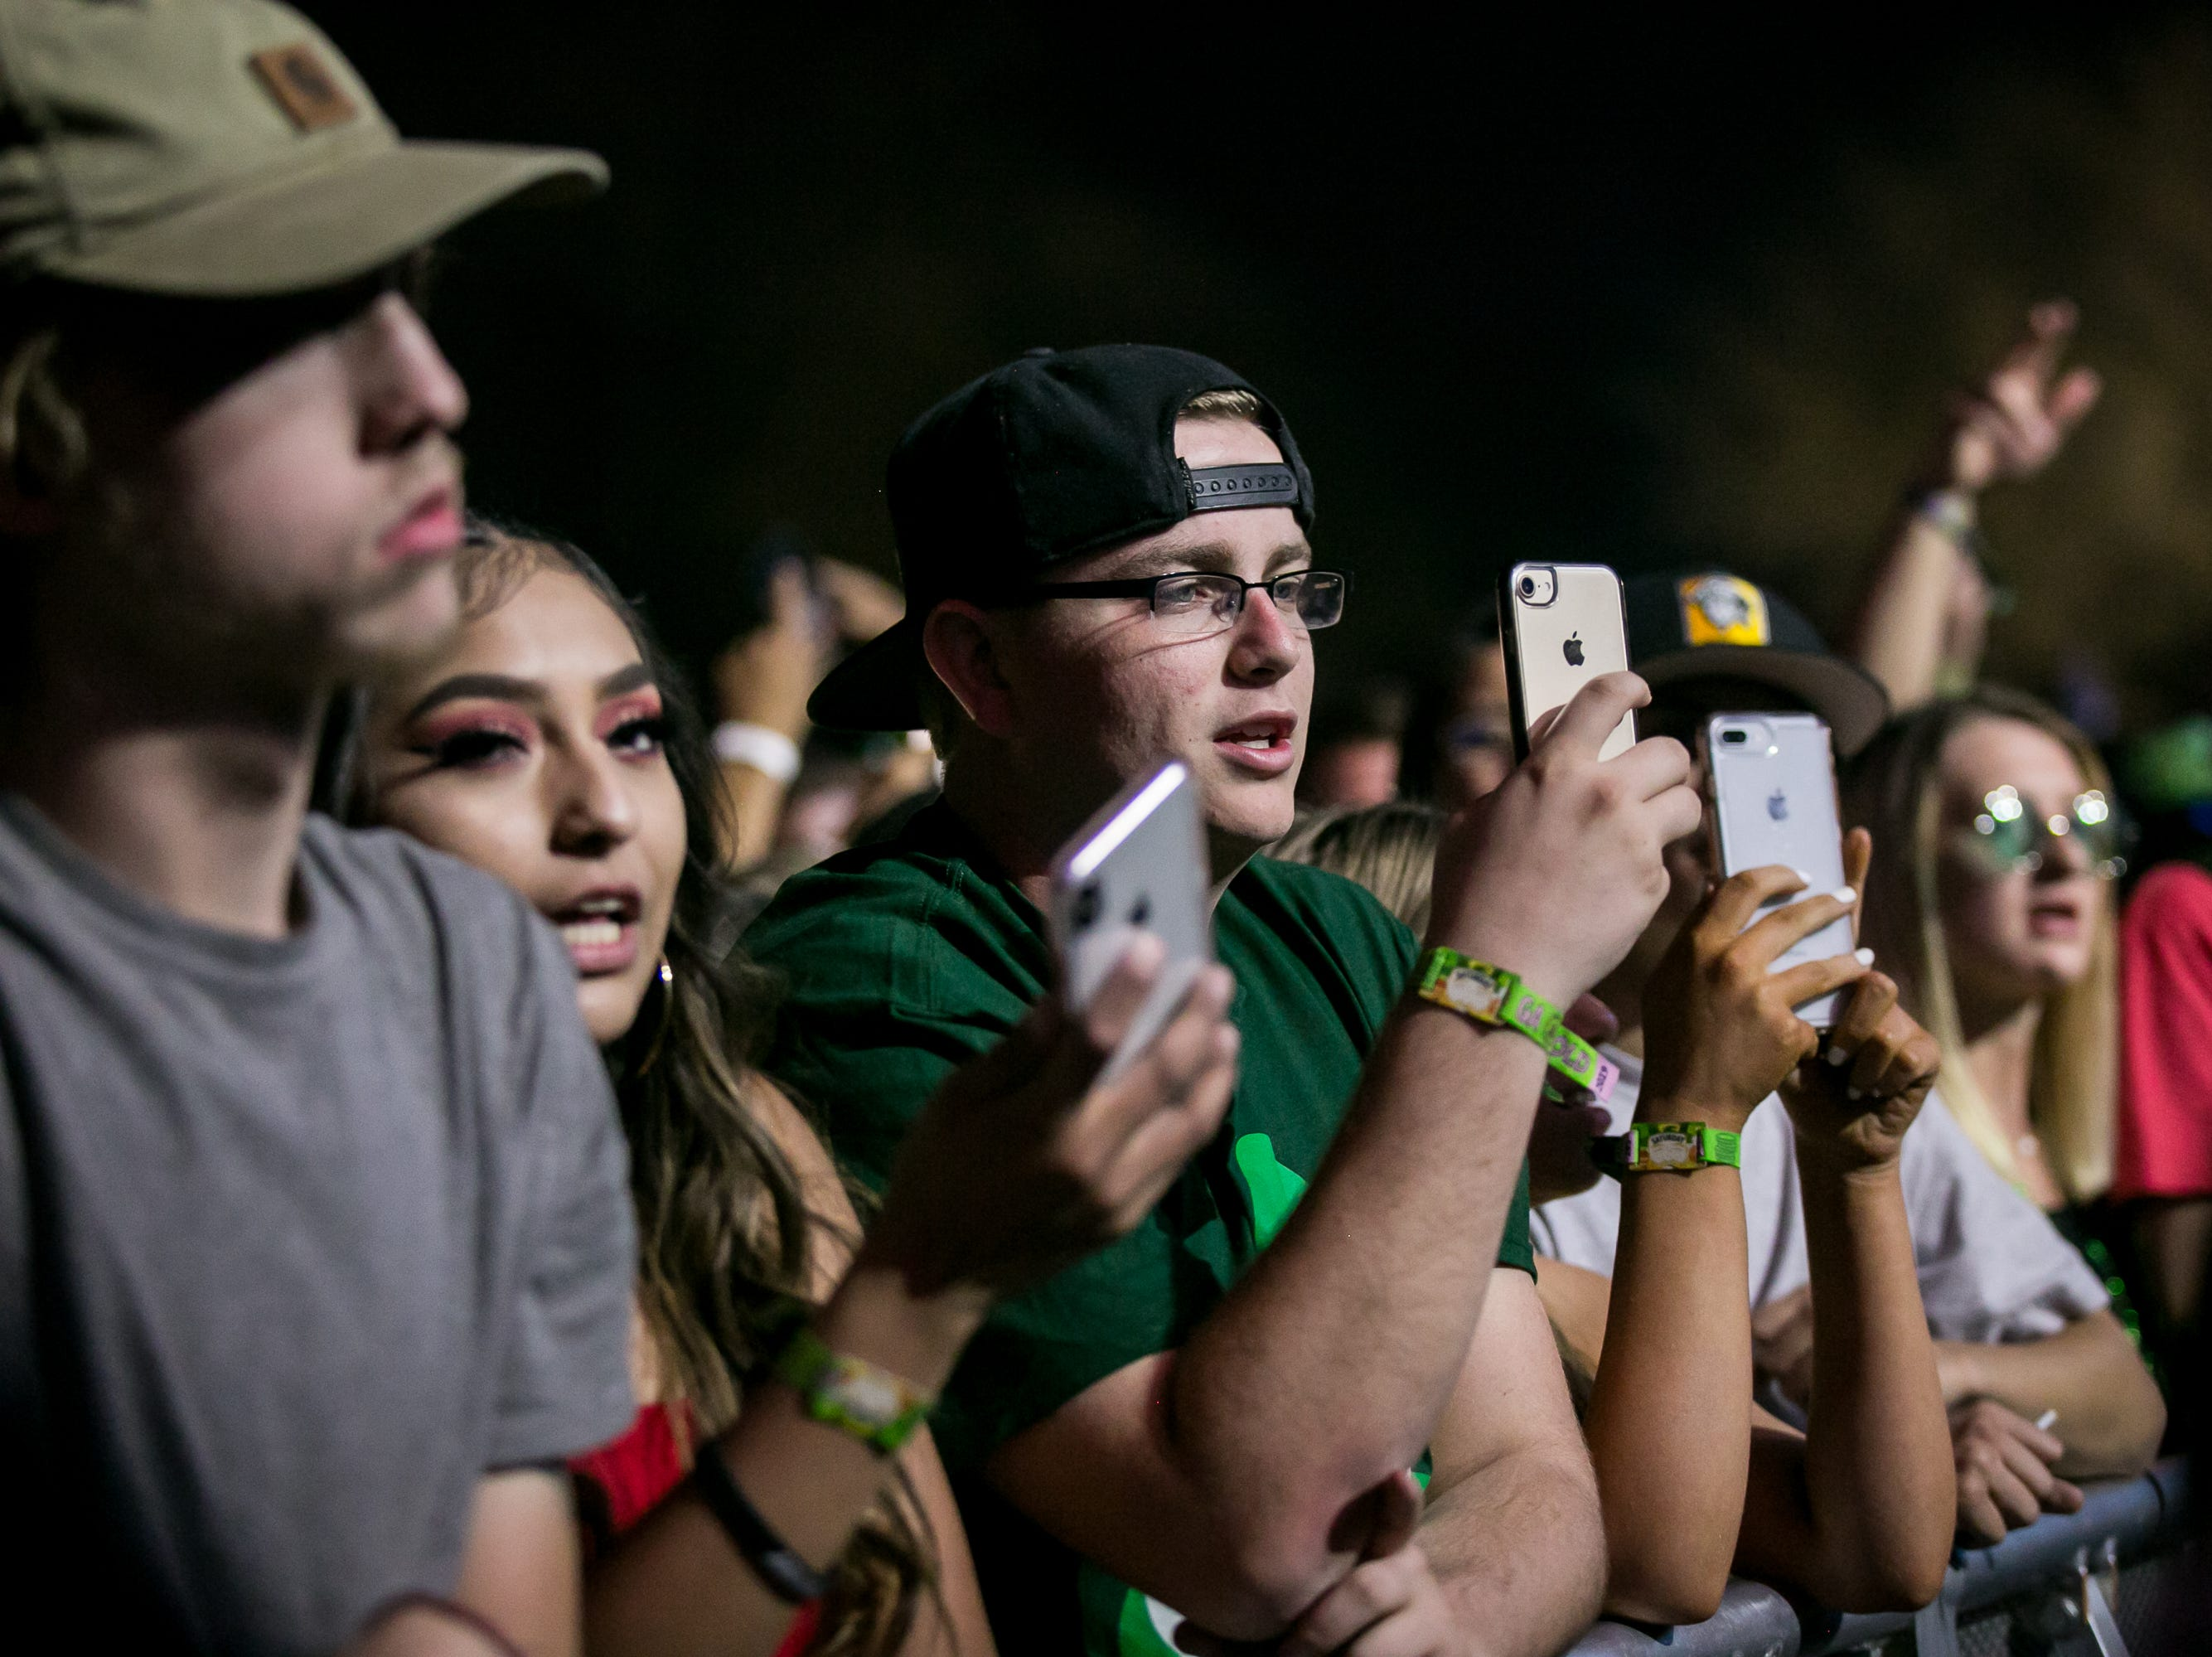 Fans take photos during Pot of Gold Music Festival at Steele Indian School Park on  March 16, 2019.